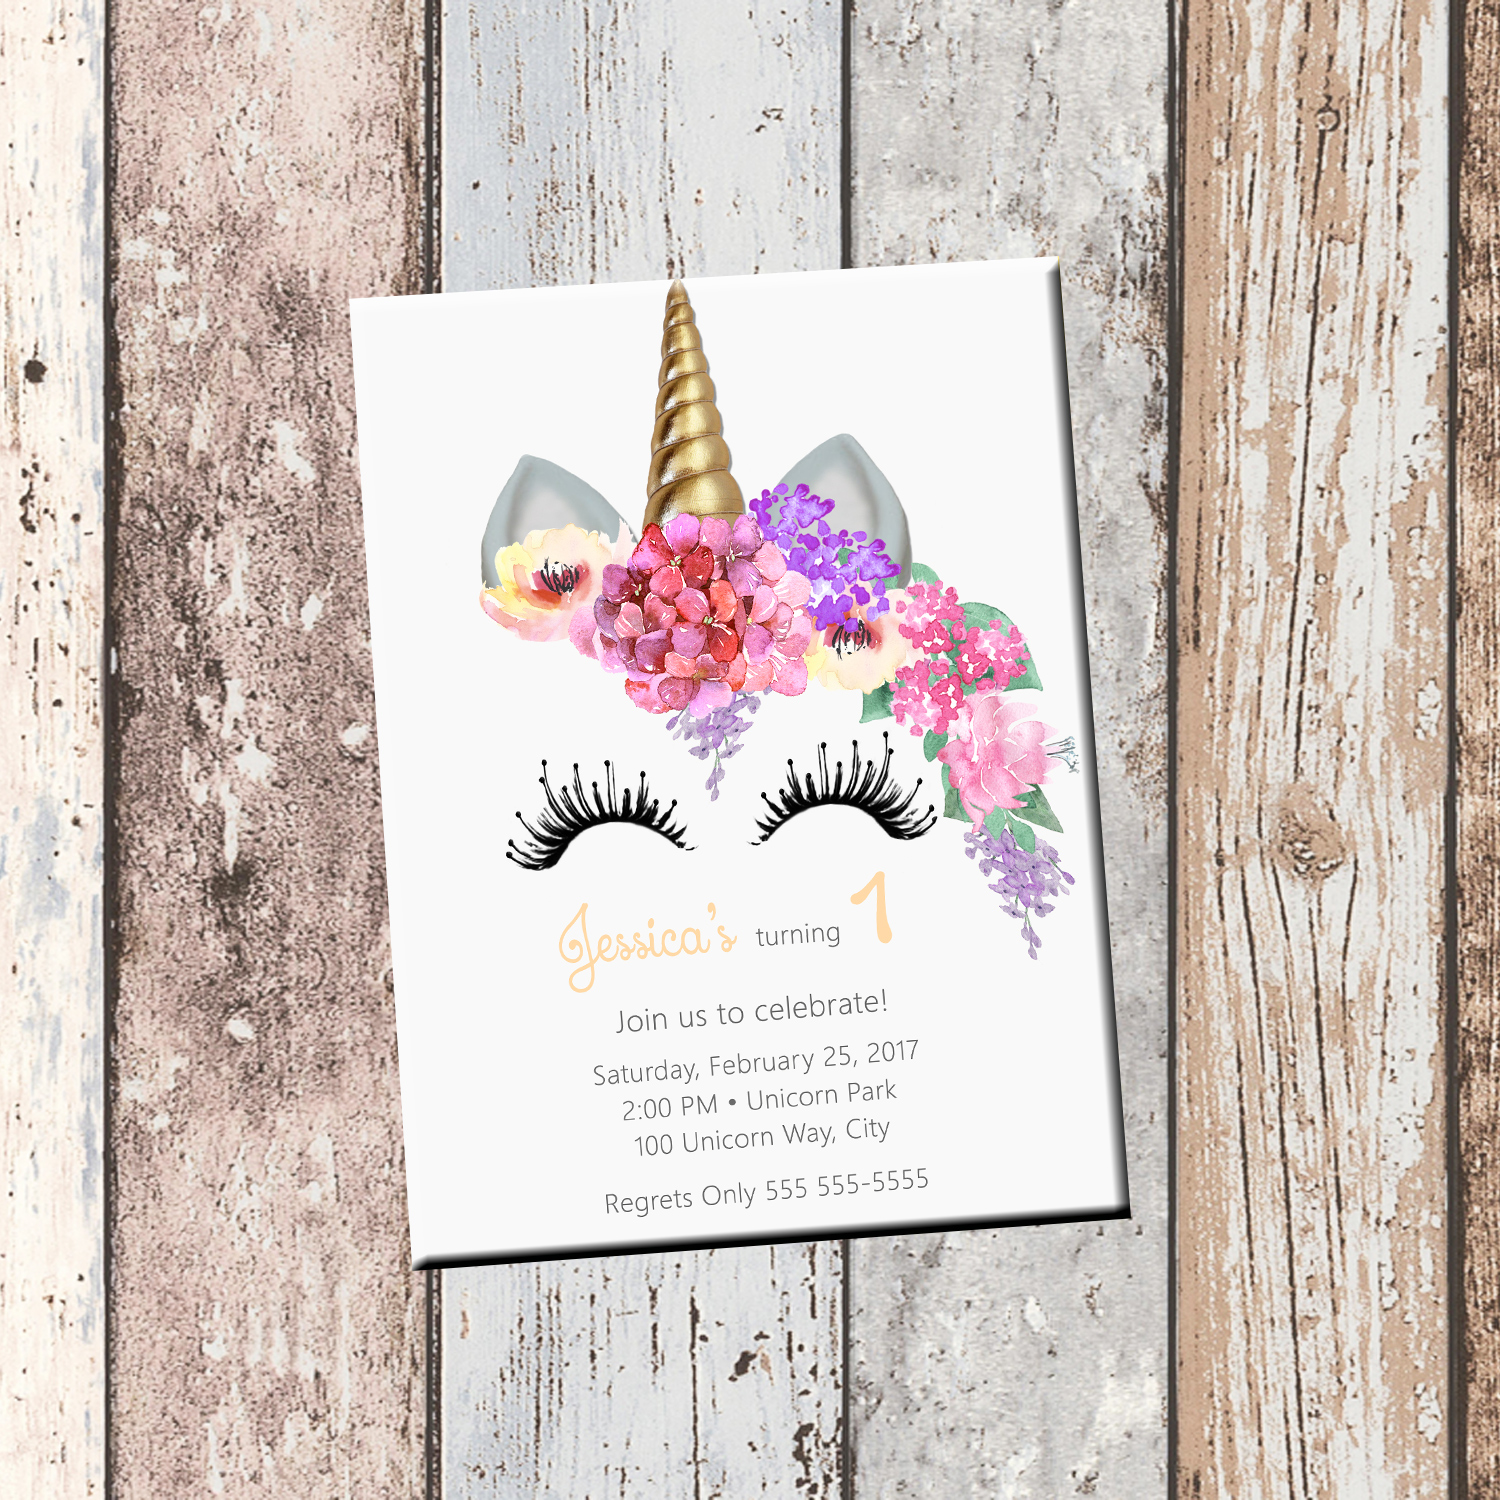 Unicorn Birthday Personalized Invitation 1 Sided, Birthday Card ...